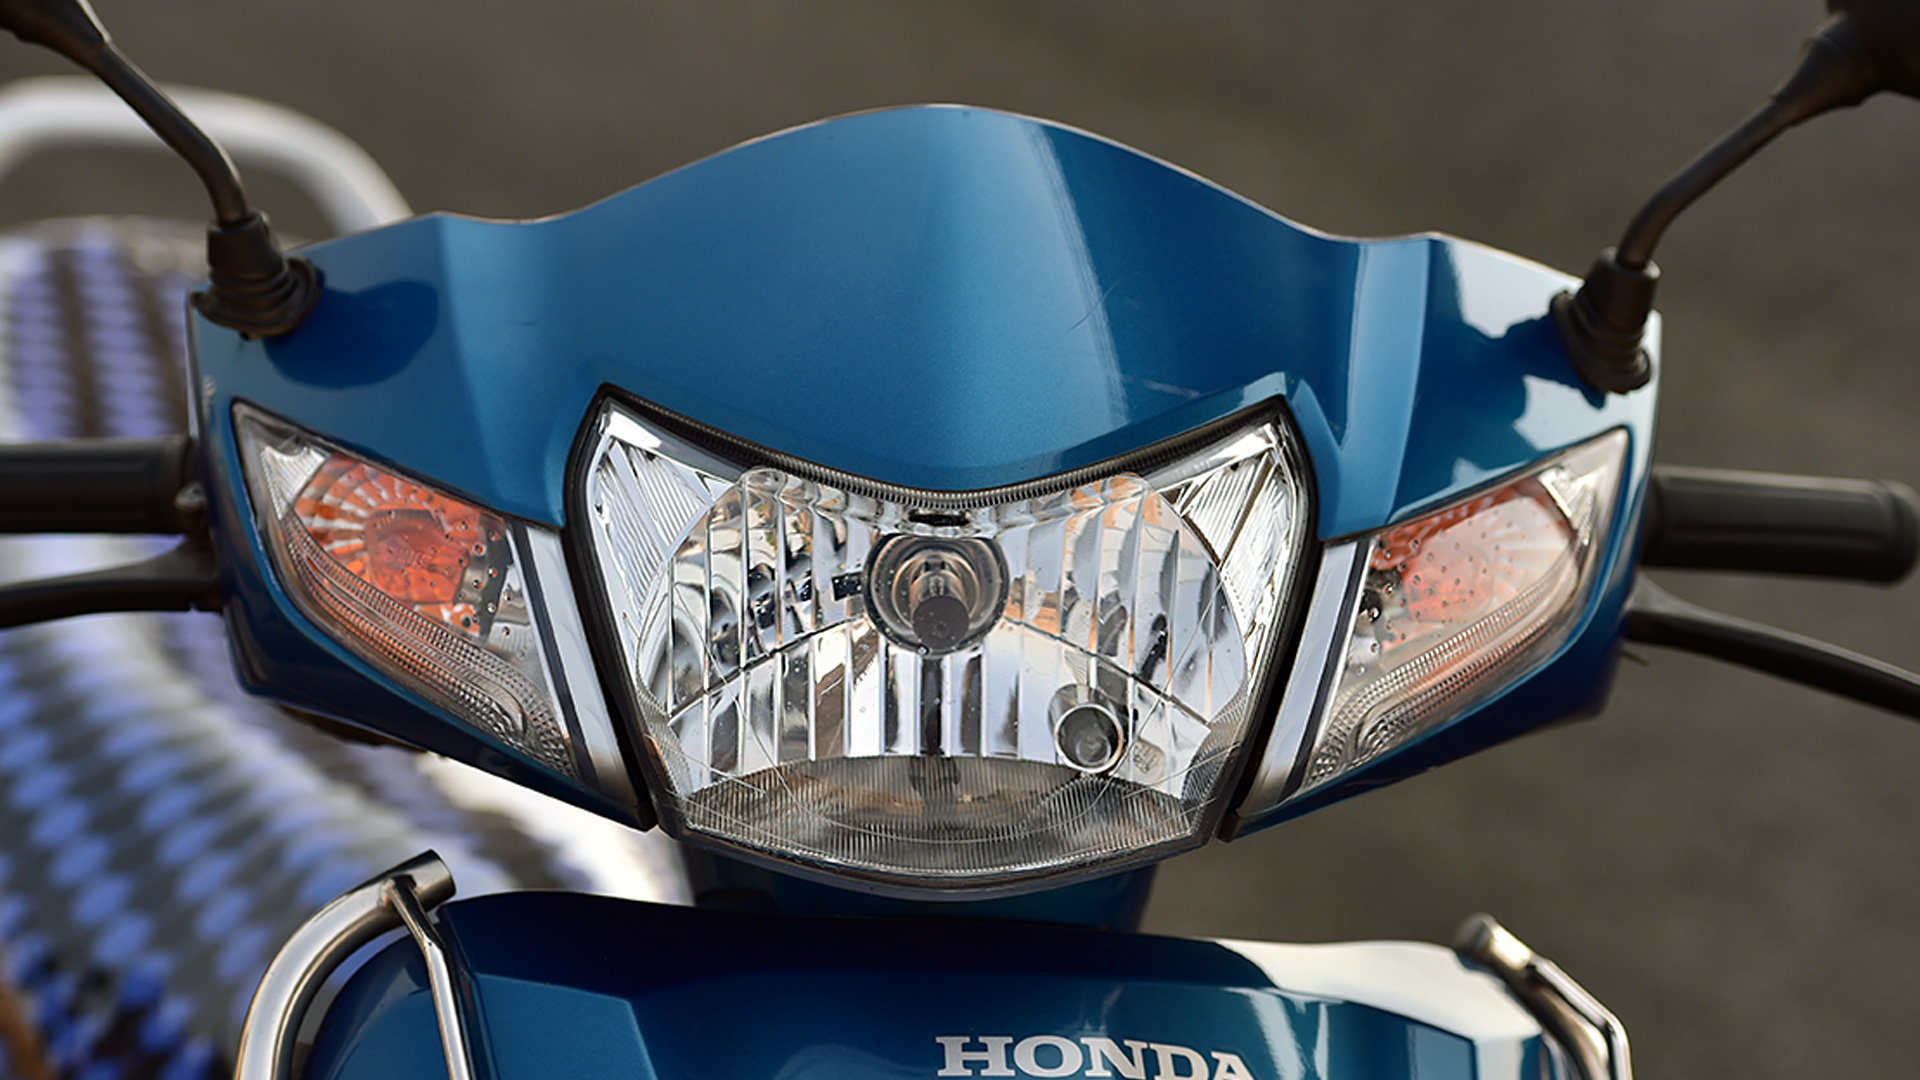 Ray Price Honda >> Honda Activa 2017 - Price, Mileage, Reviews, Specification, Gallery - Overdrive